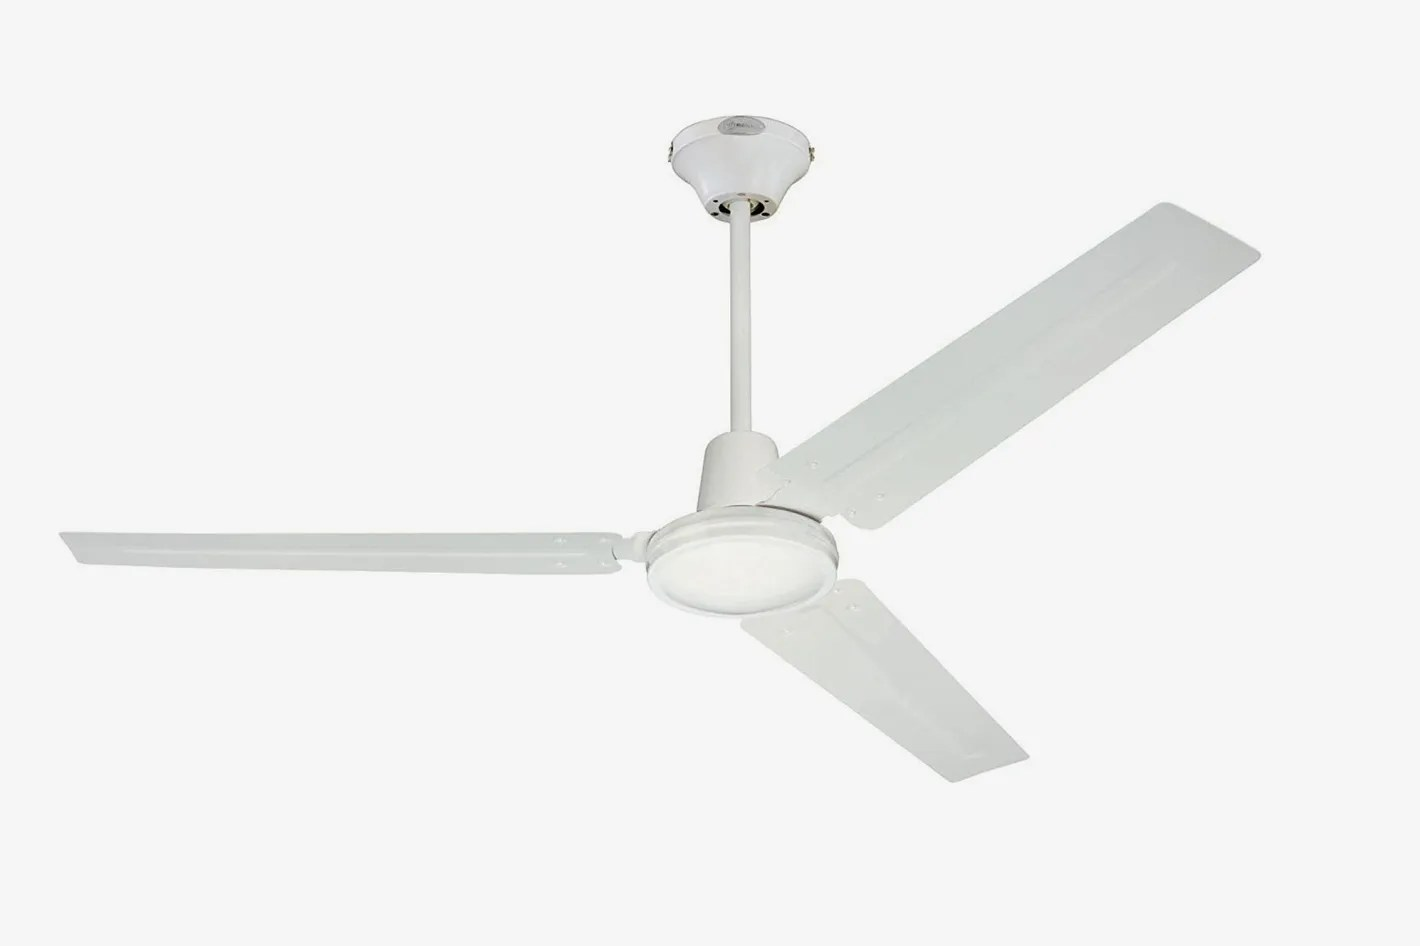 Ceiling Fan With Folding Blades The 9 Best Ceiling Fans On Amazon 2018